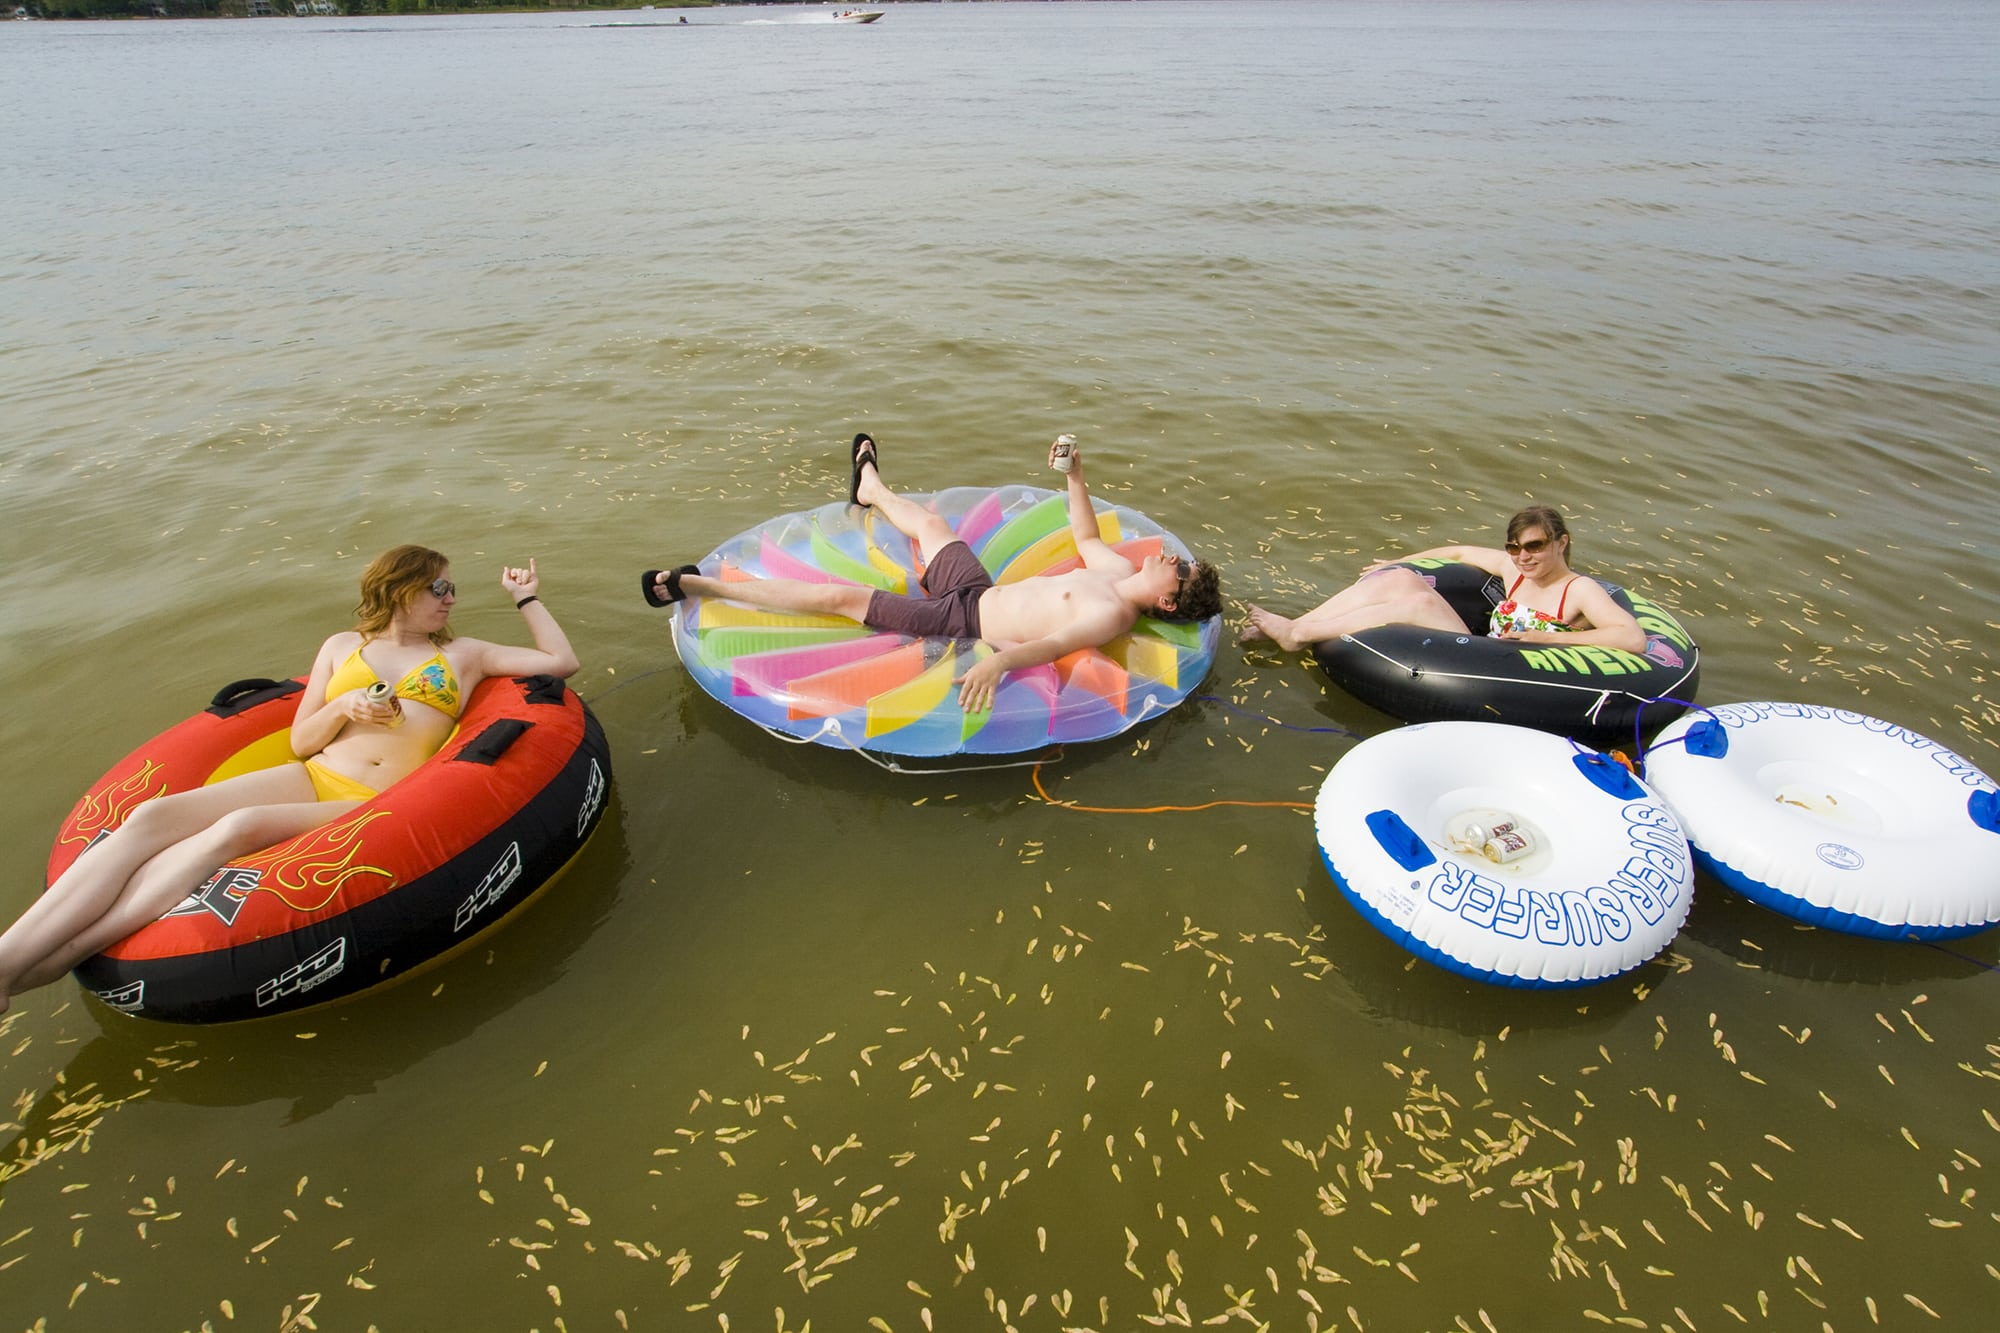 Floating on the lake | Memorial Day Weekend in Decatur, Michigan